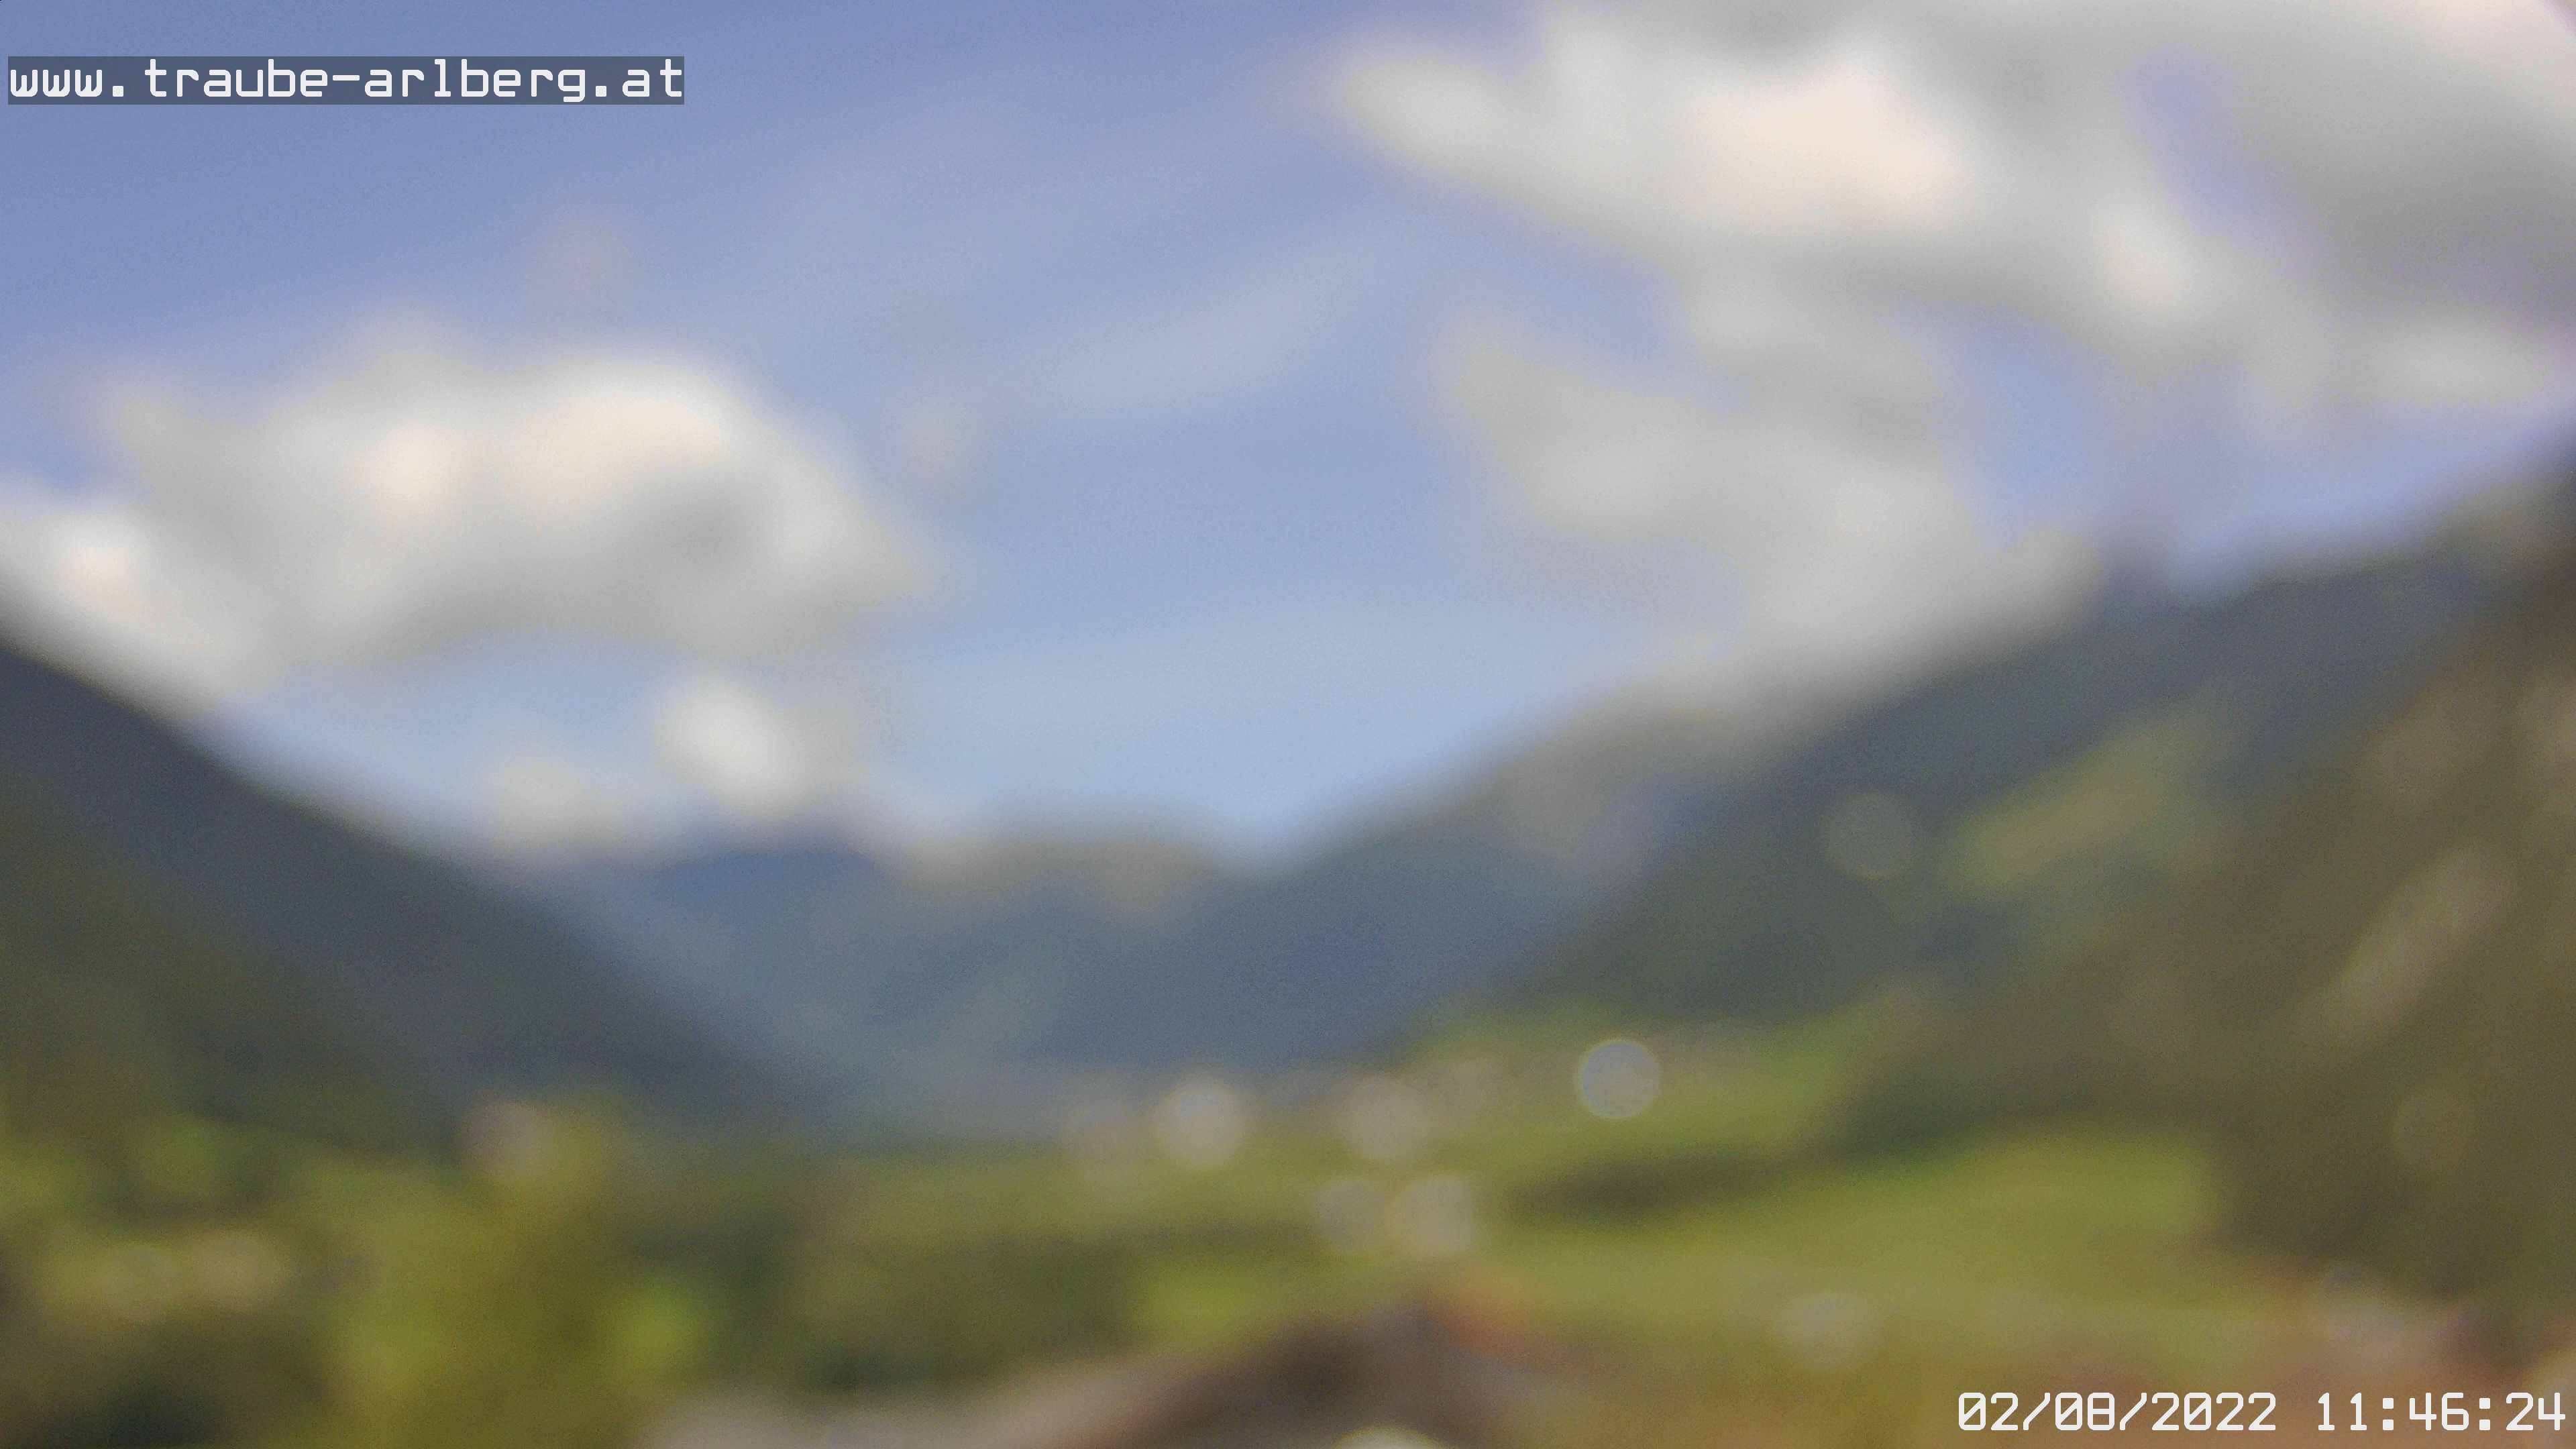 Webcam - Hotel - Gasthof Traube, Schnann am Arlberg